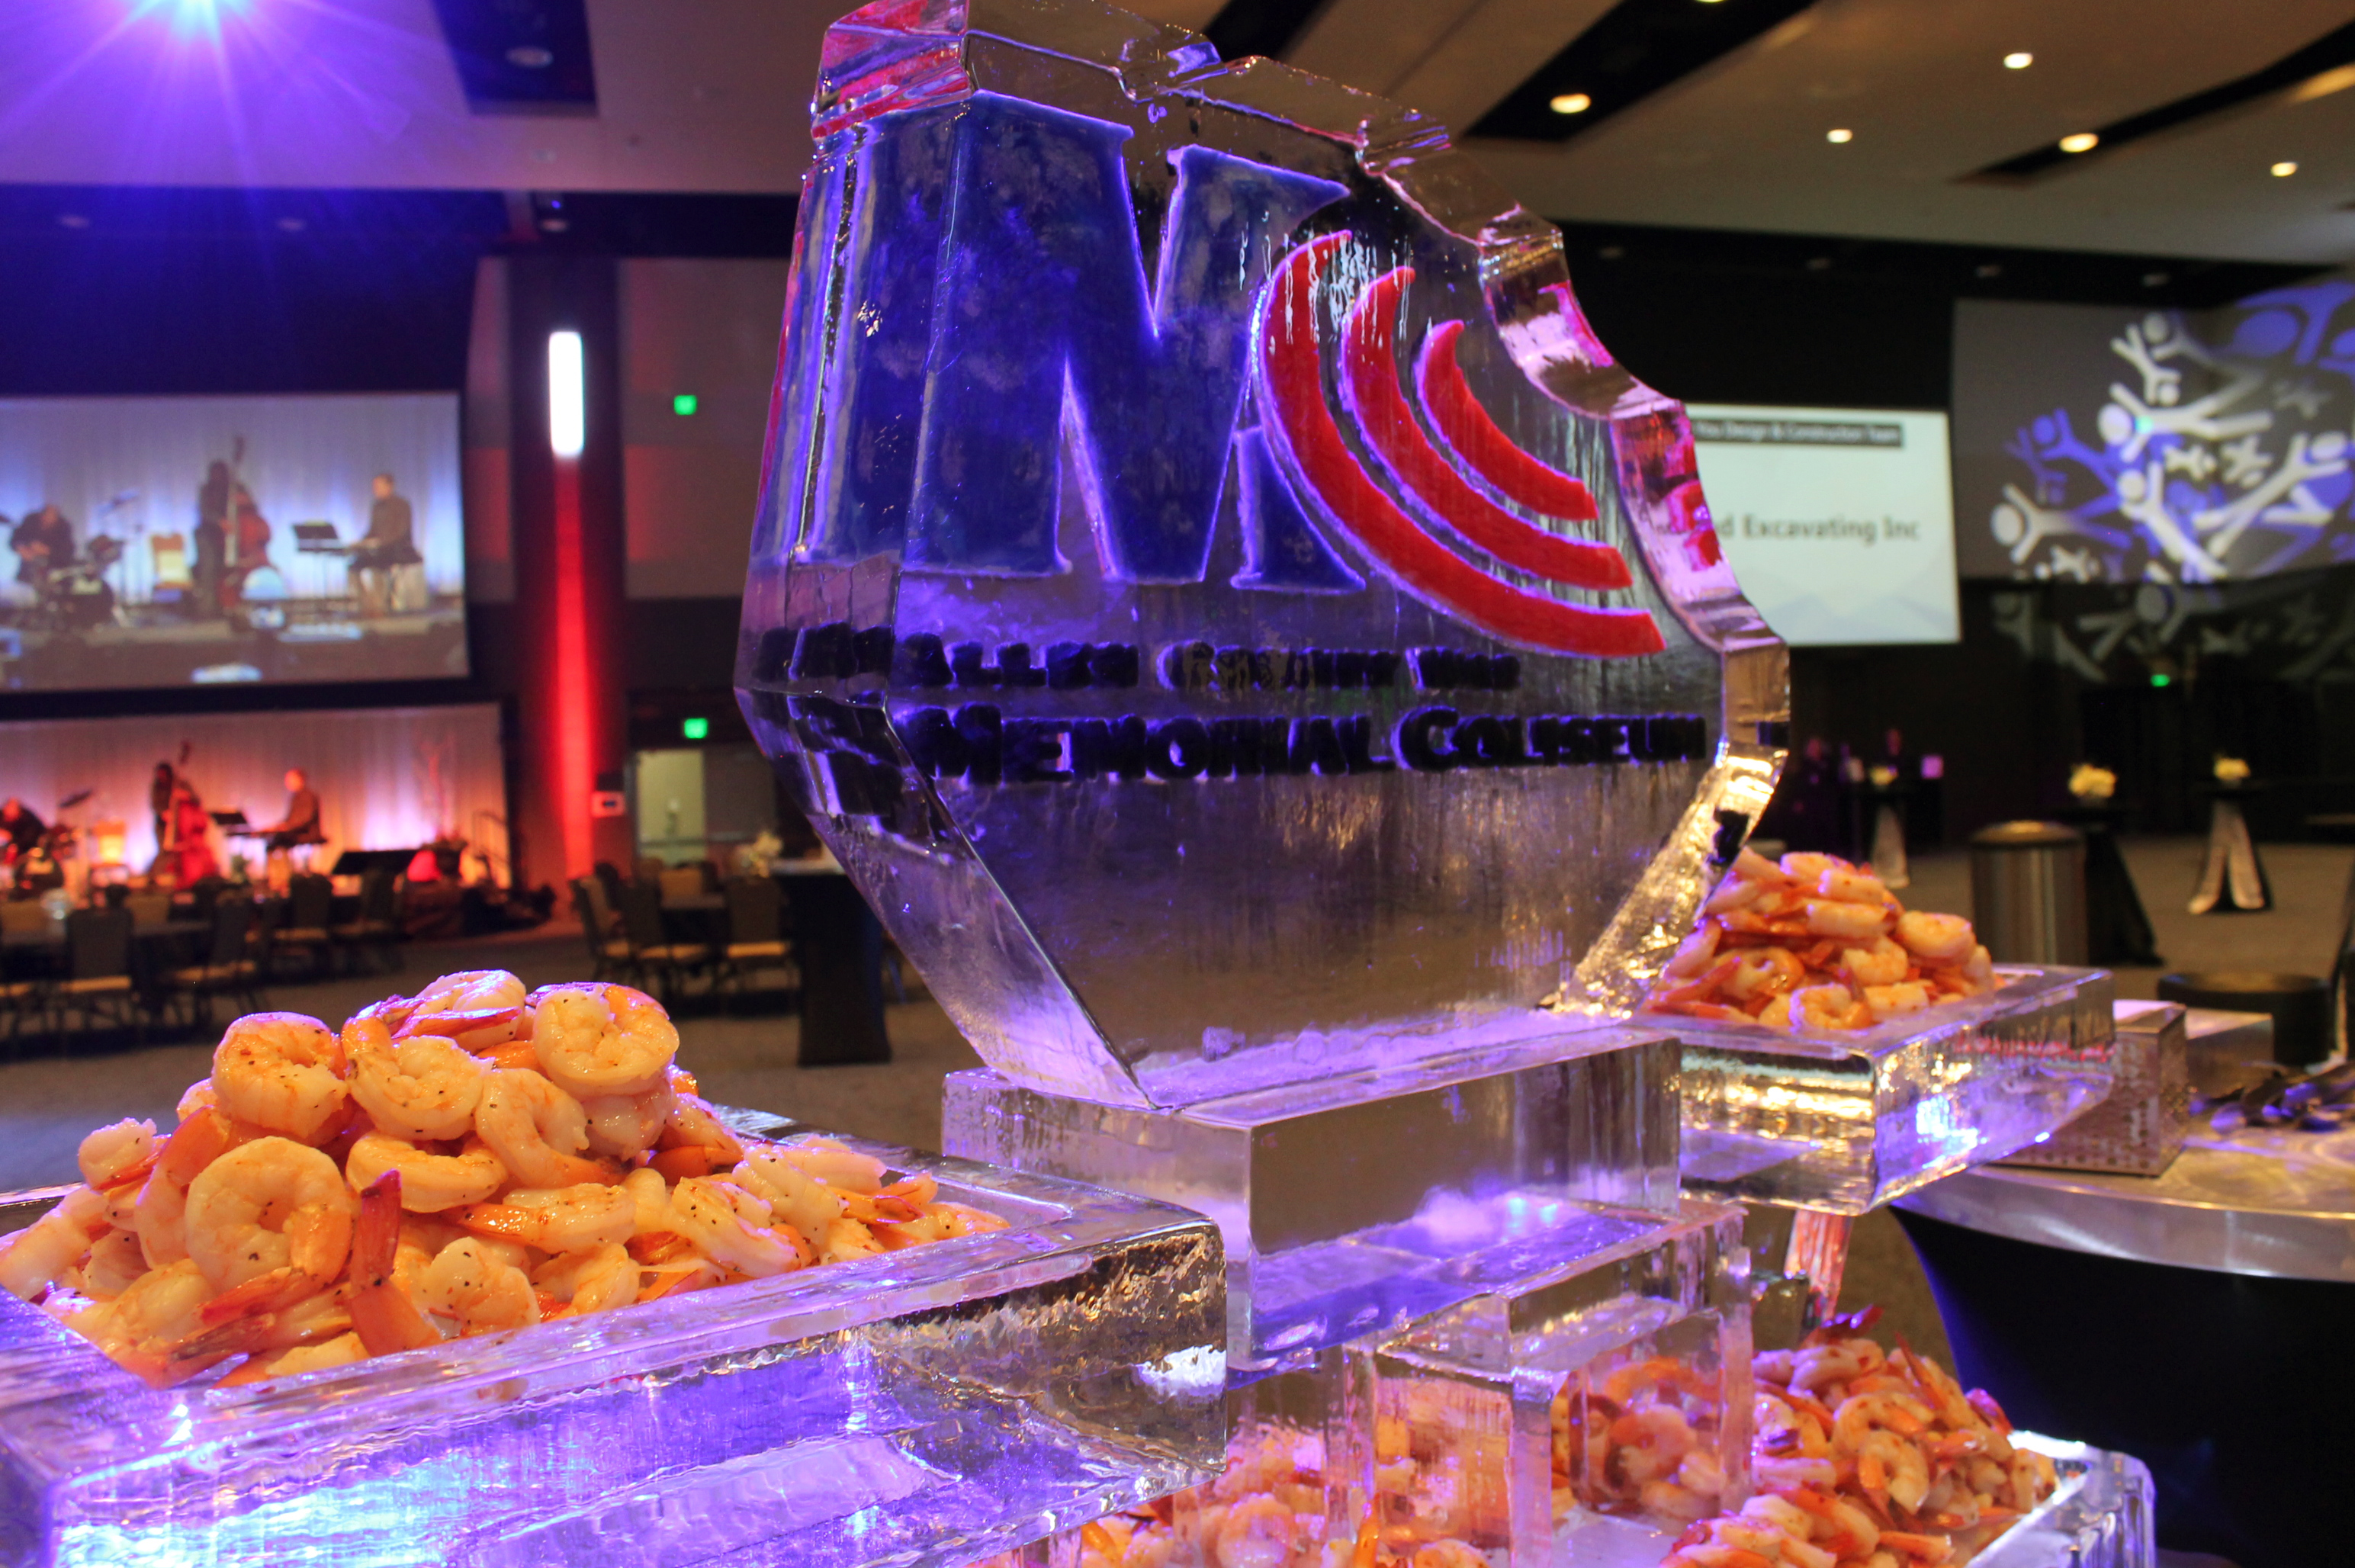 http://www.memorialcoliseum.com/images/Images/aramarkcatering_gallery/icesculpture.jpg